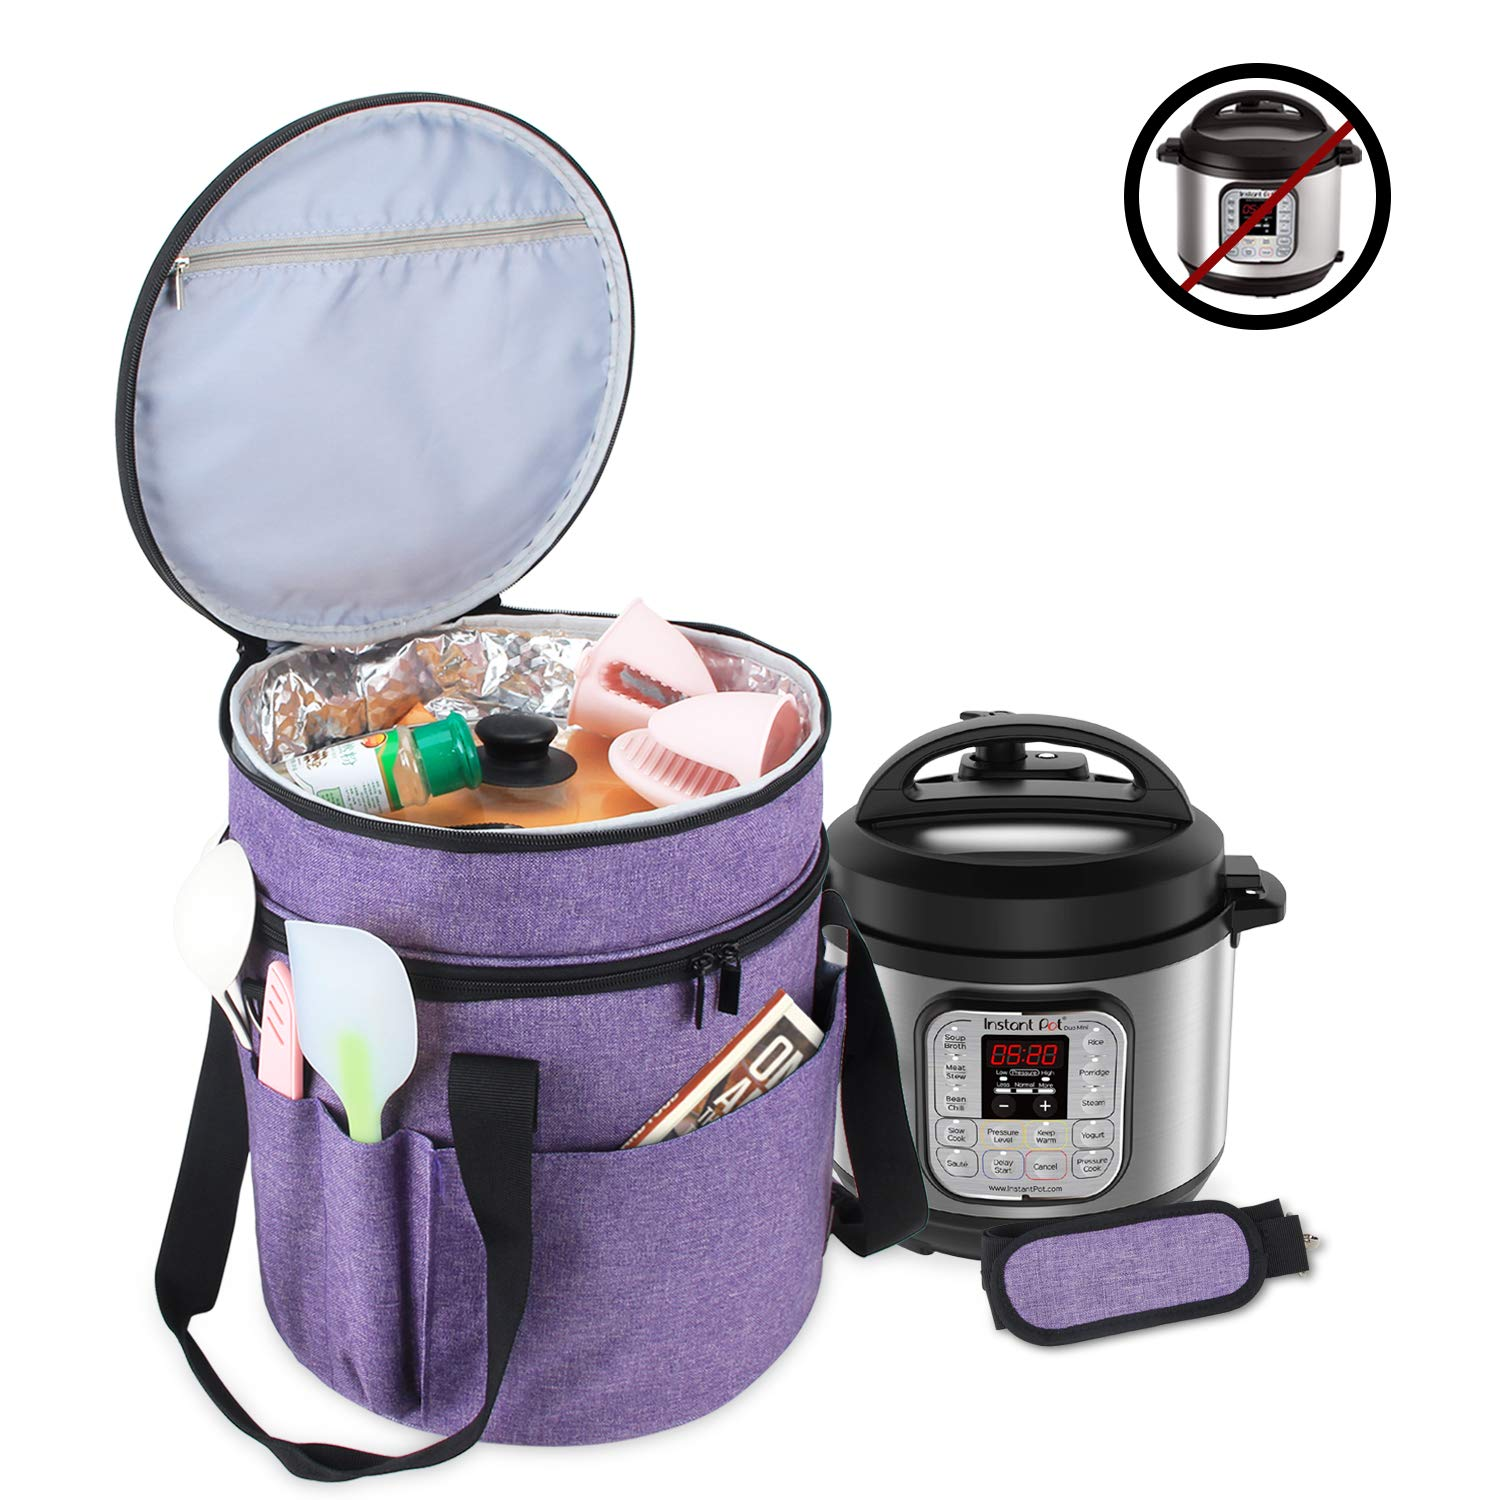 Luxja Carrying Bag Compatible with Instant Pot (3 Quart), Travel Tote Bag for 3 Quart Pressure Cooker and Extra Accessories, Purple